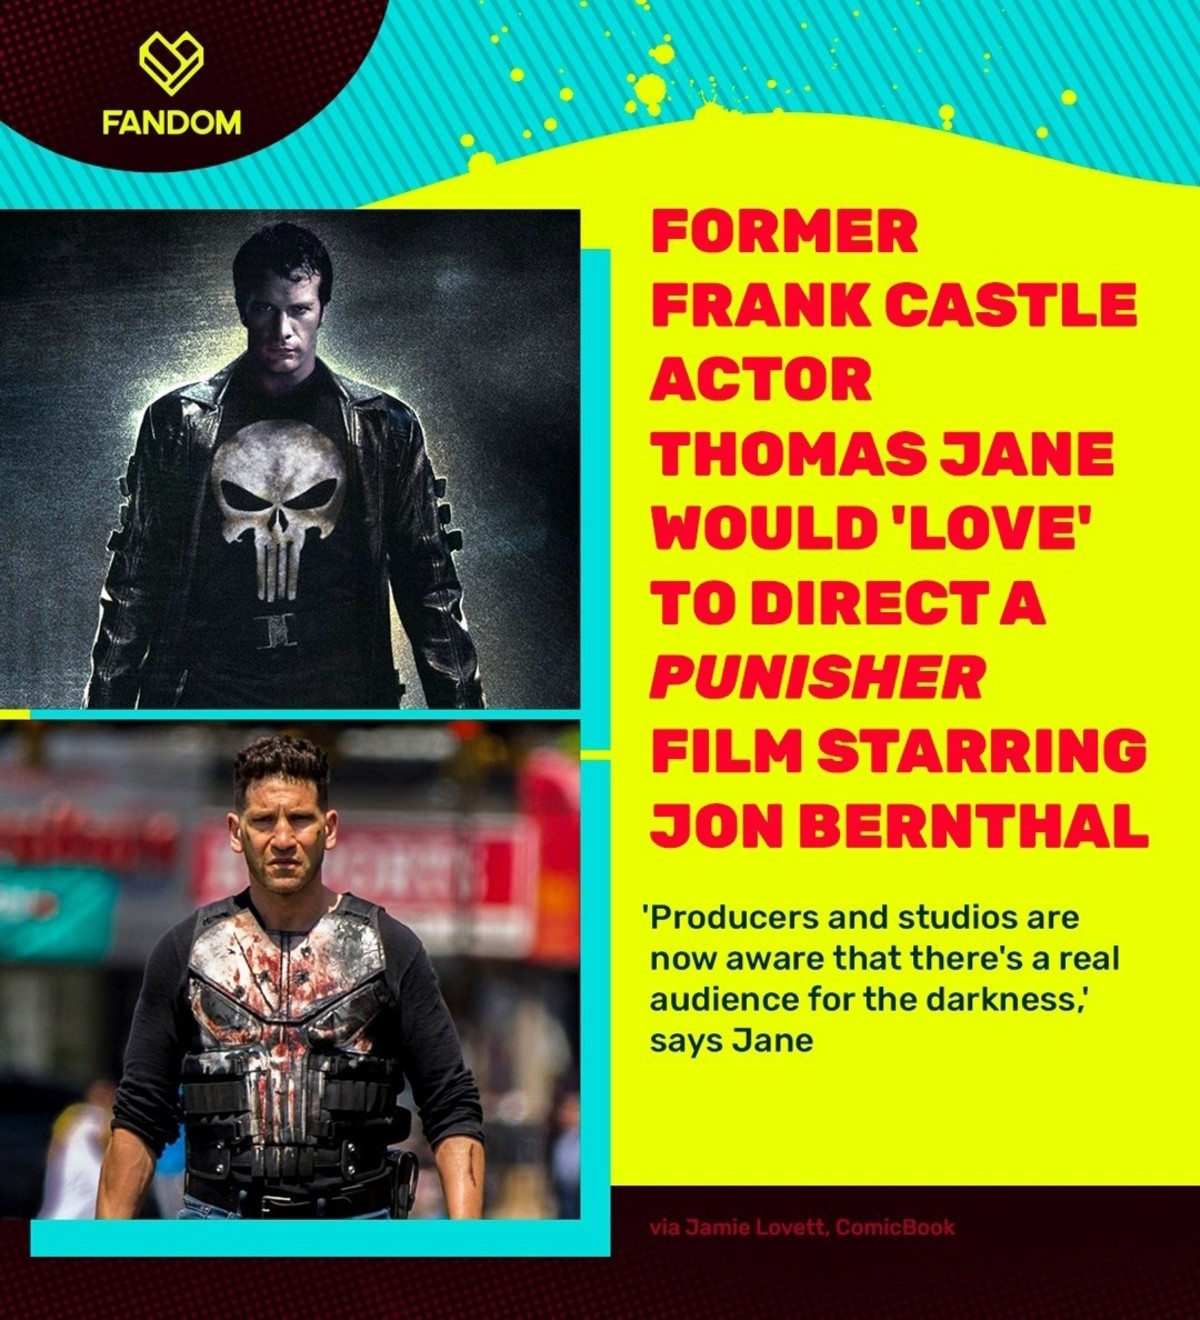 MCU Denied.. .. I just finished Season 1 of the punisher and it was pretty good, a bit slow but it had a good ending, I think the punisher works better as a show rather then a